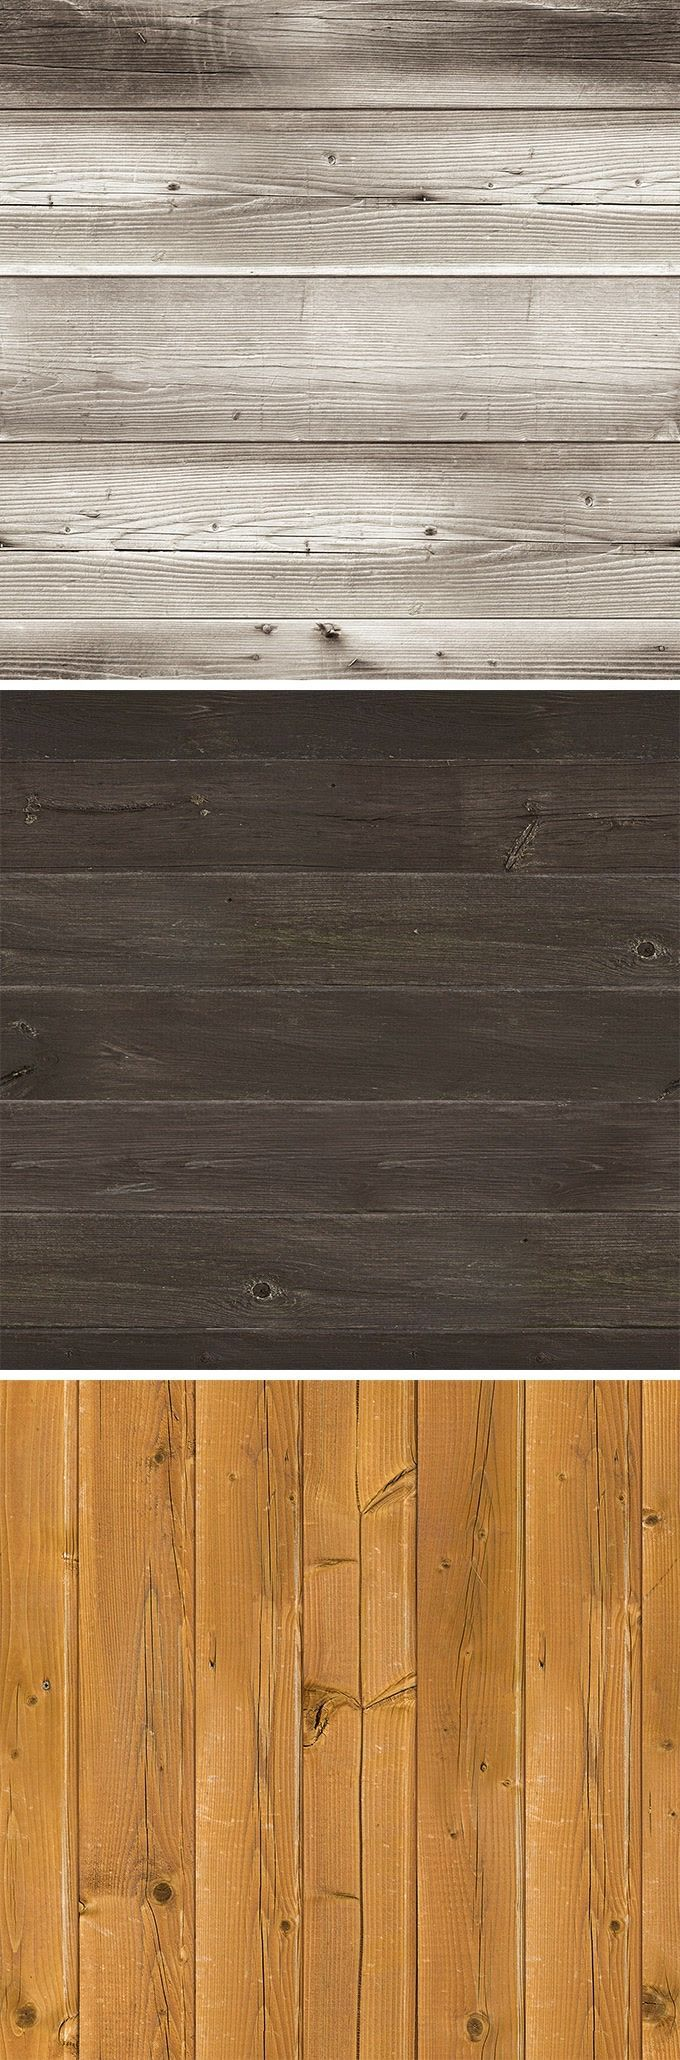 SEAMLESS WOOD TEXTURES - Hope it can help with your design. Feel free to download it all without any requirement on http://getfreeresources.com